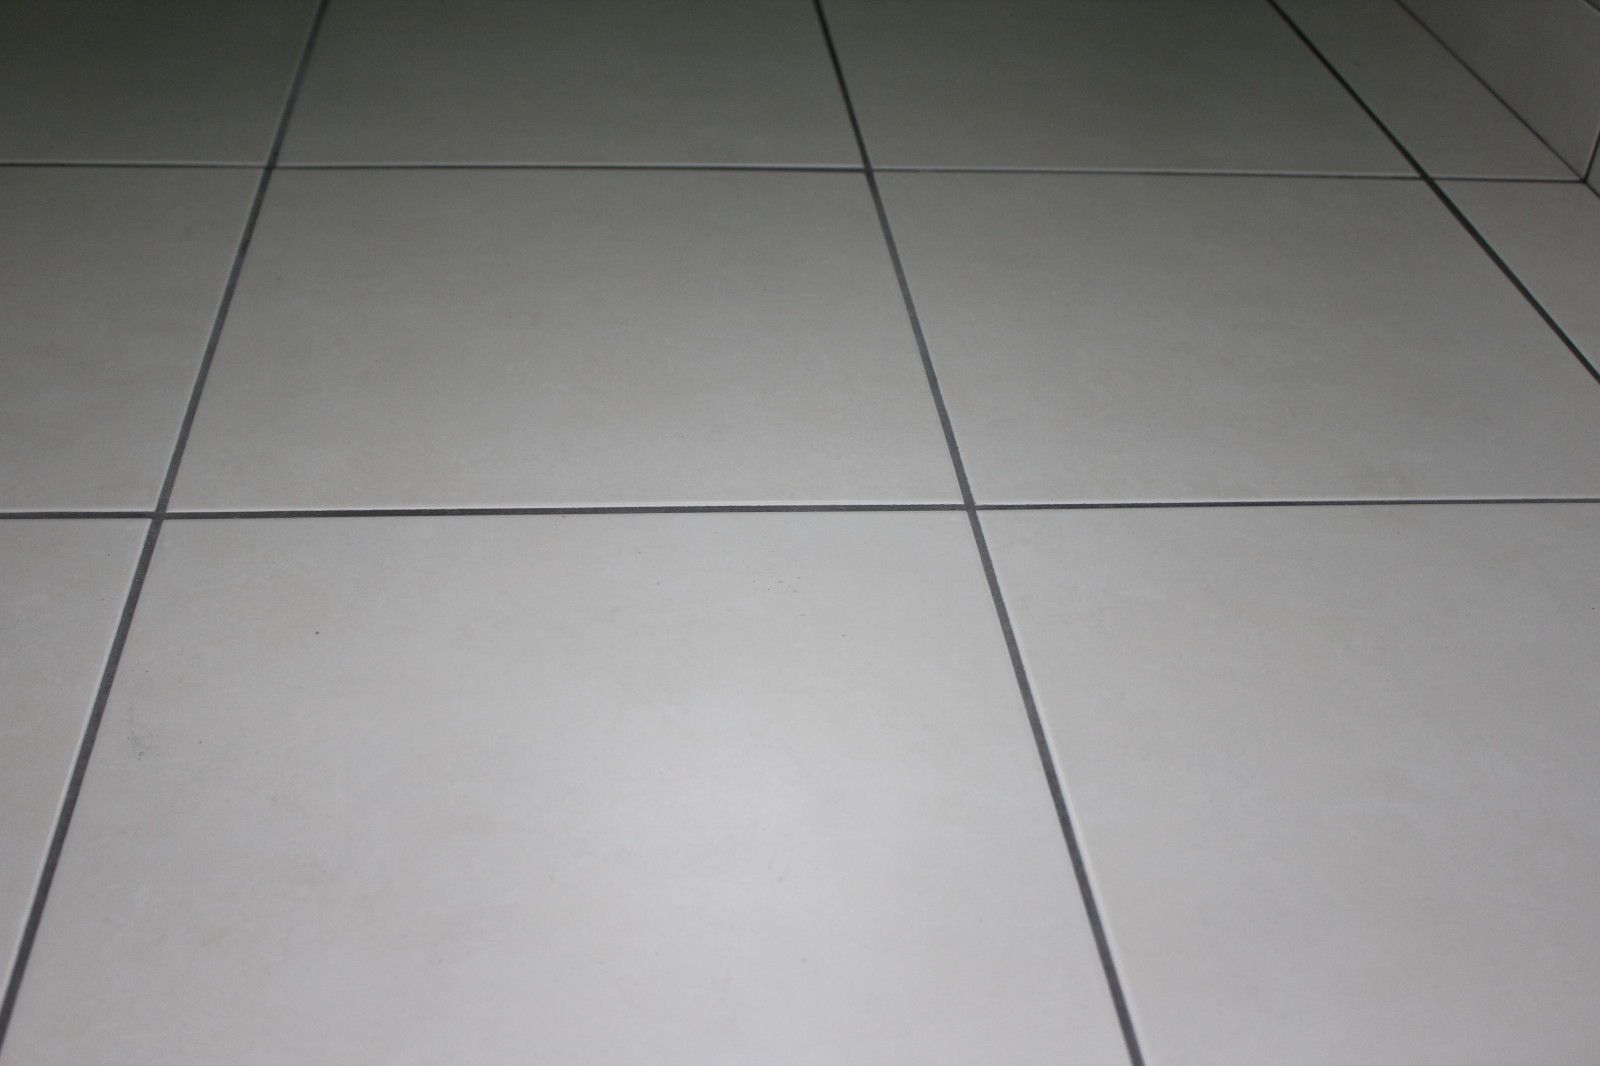 Carrelage 3 5 mm paisseur for Carrelage exterieur 30x30